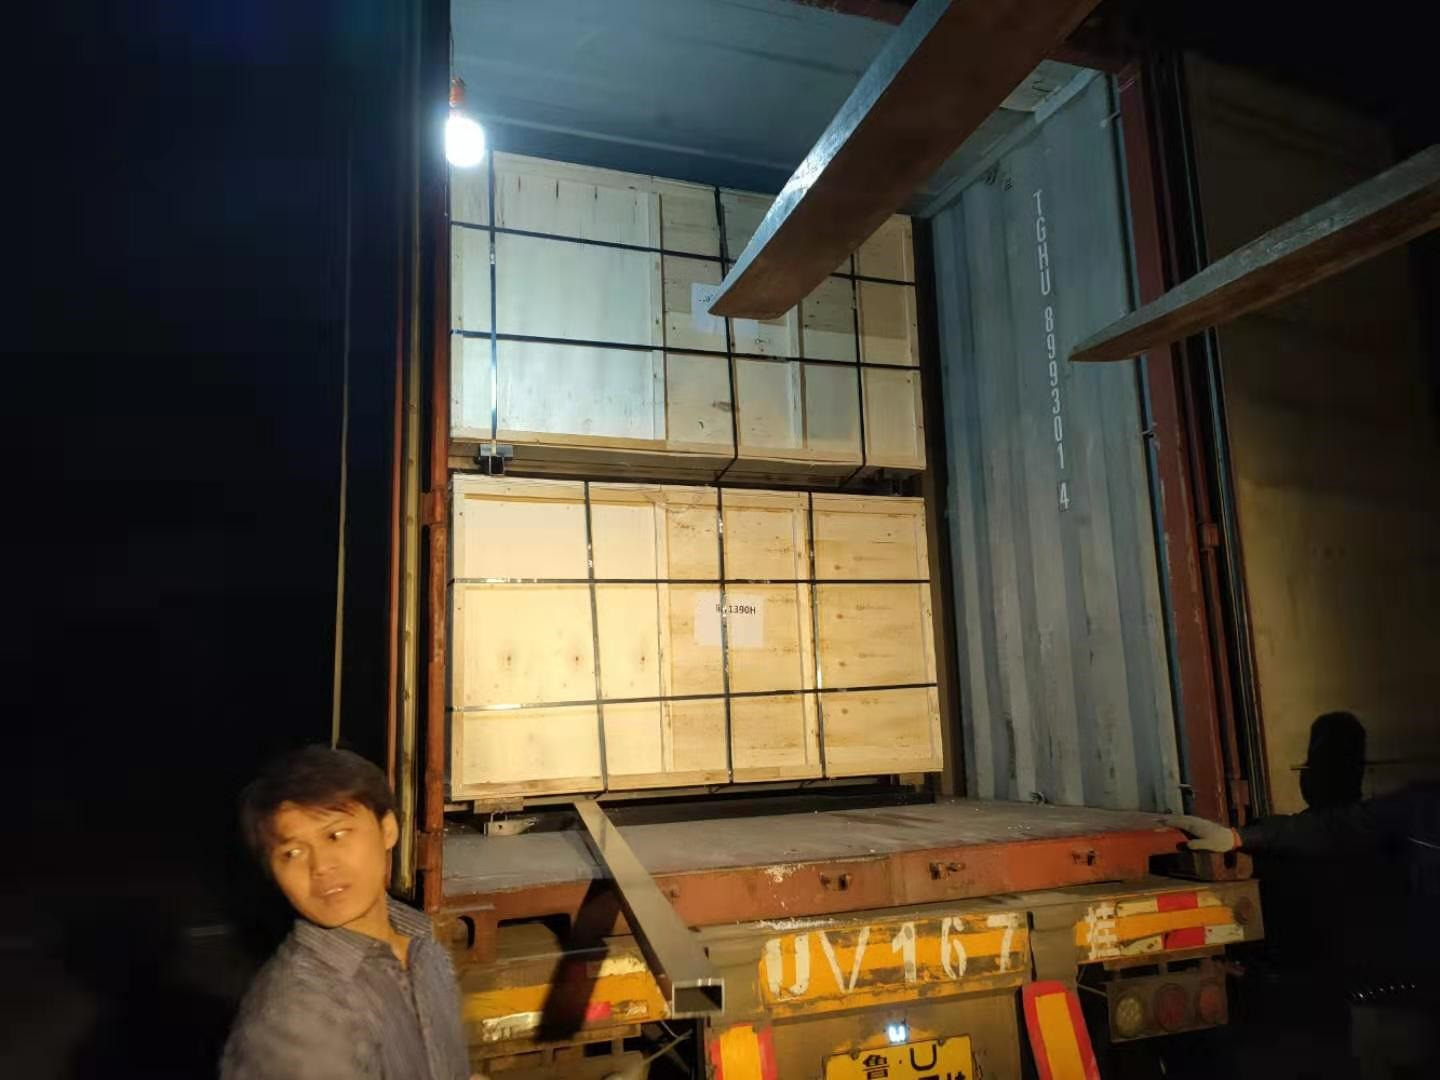 Thank you very much to foreign customers for purchasing a container of goods